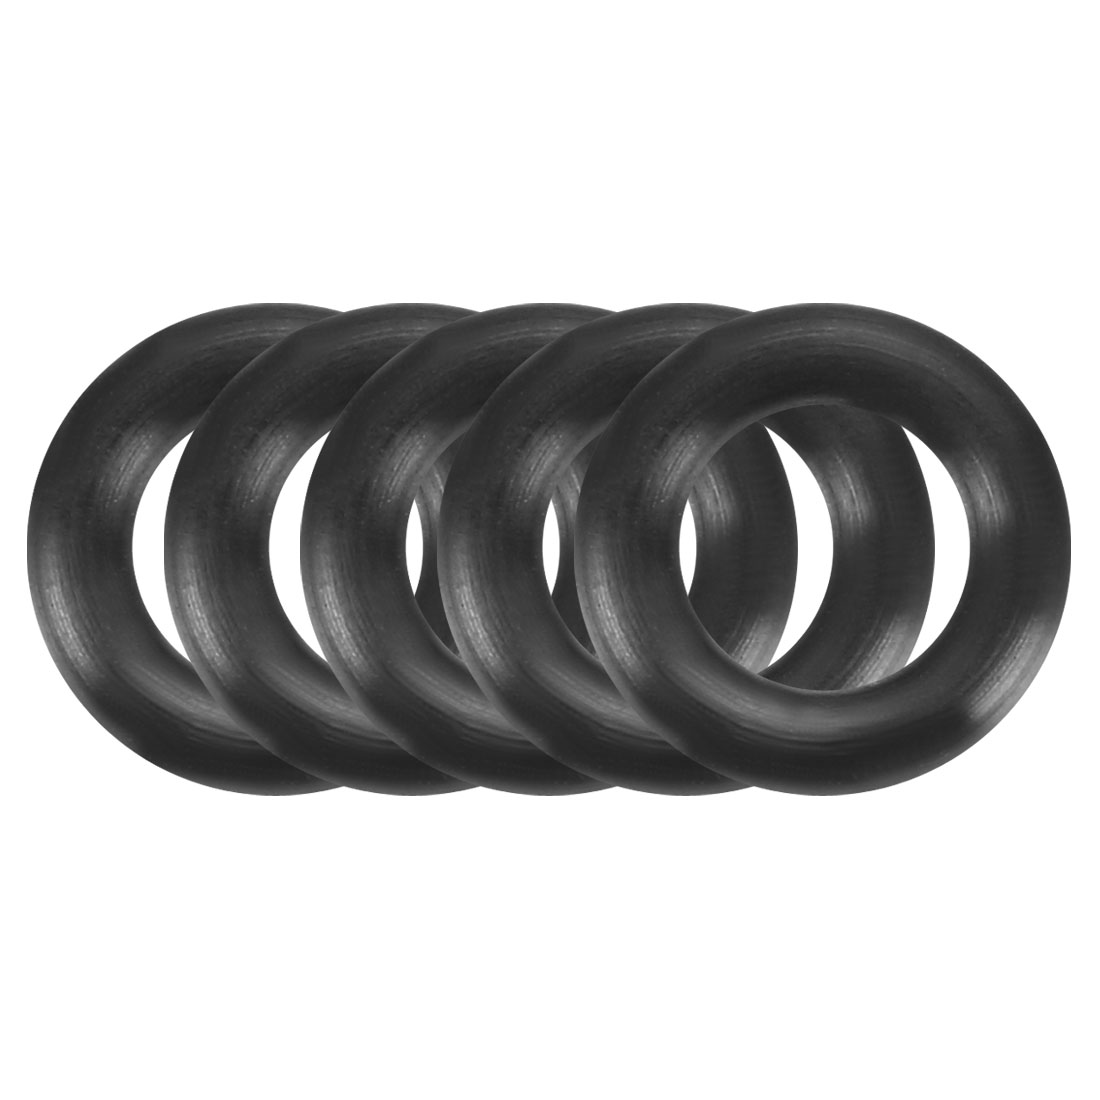 100Pcs 8.5mm x 1.9mm Black Flexible Nitrile Rubber O Ring Oil Seal Washer Grommets